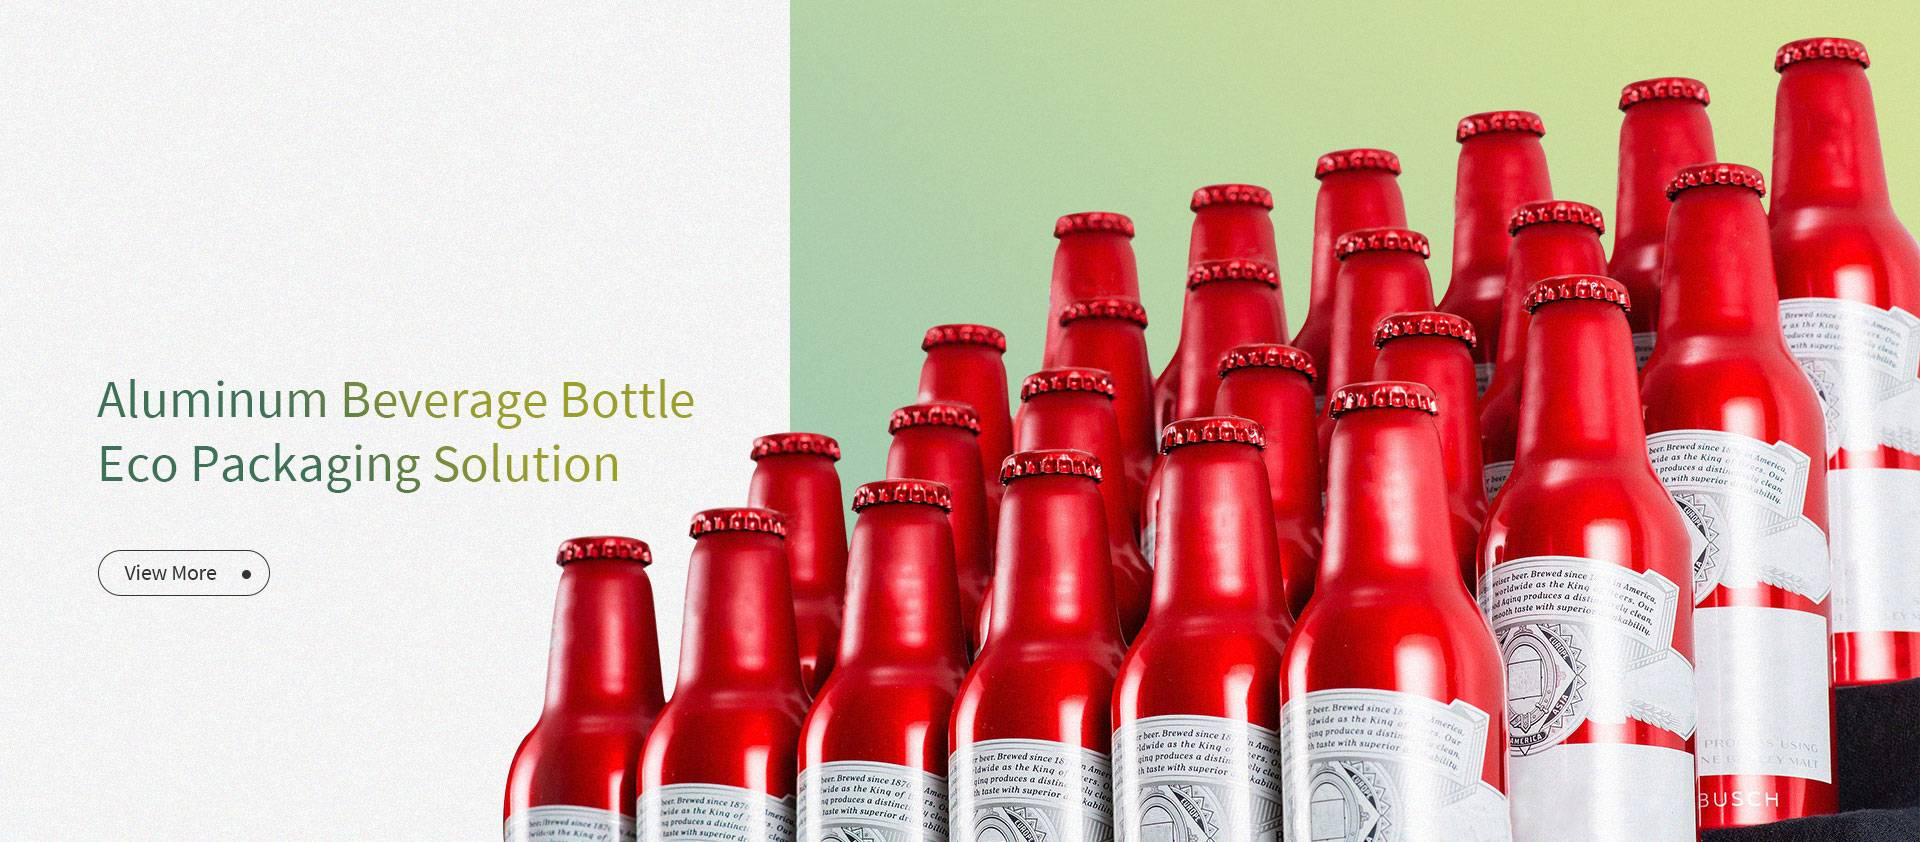 Aluminum Beverage Bottle Eco Packaging Solution